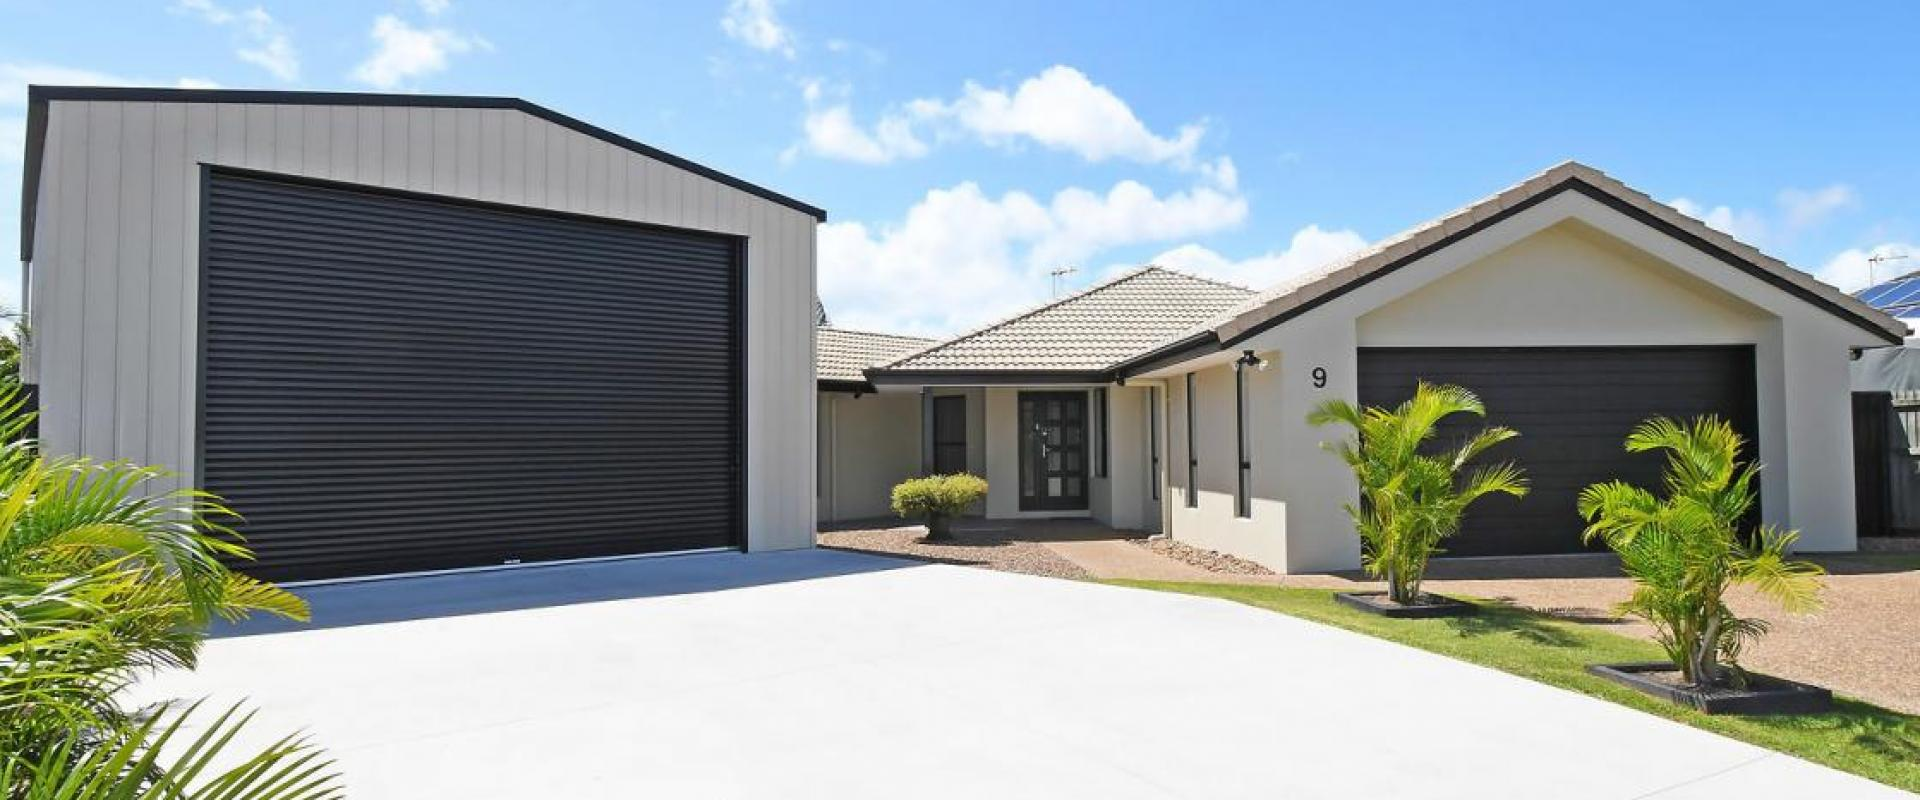 EXTRA 3.4 METRE HEIGHT, 9 x 7 RV or BOAT SHED, SOUGHT AFTER ELITE CUL DE SAC AND SUBURB LOCATION, IMMACULATE SPACIOUS HOME, SUPERB LANDSCAPED GARDEN.